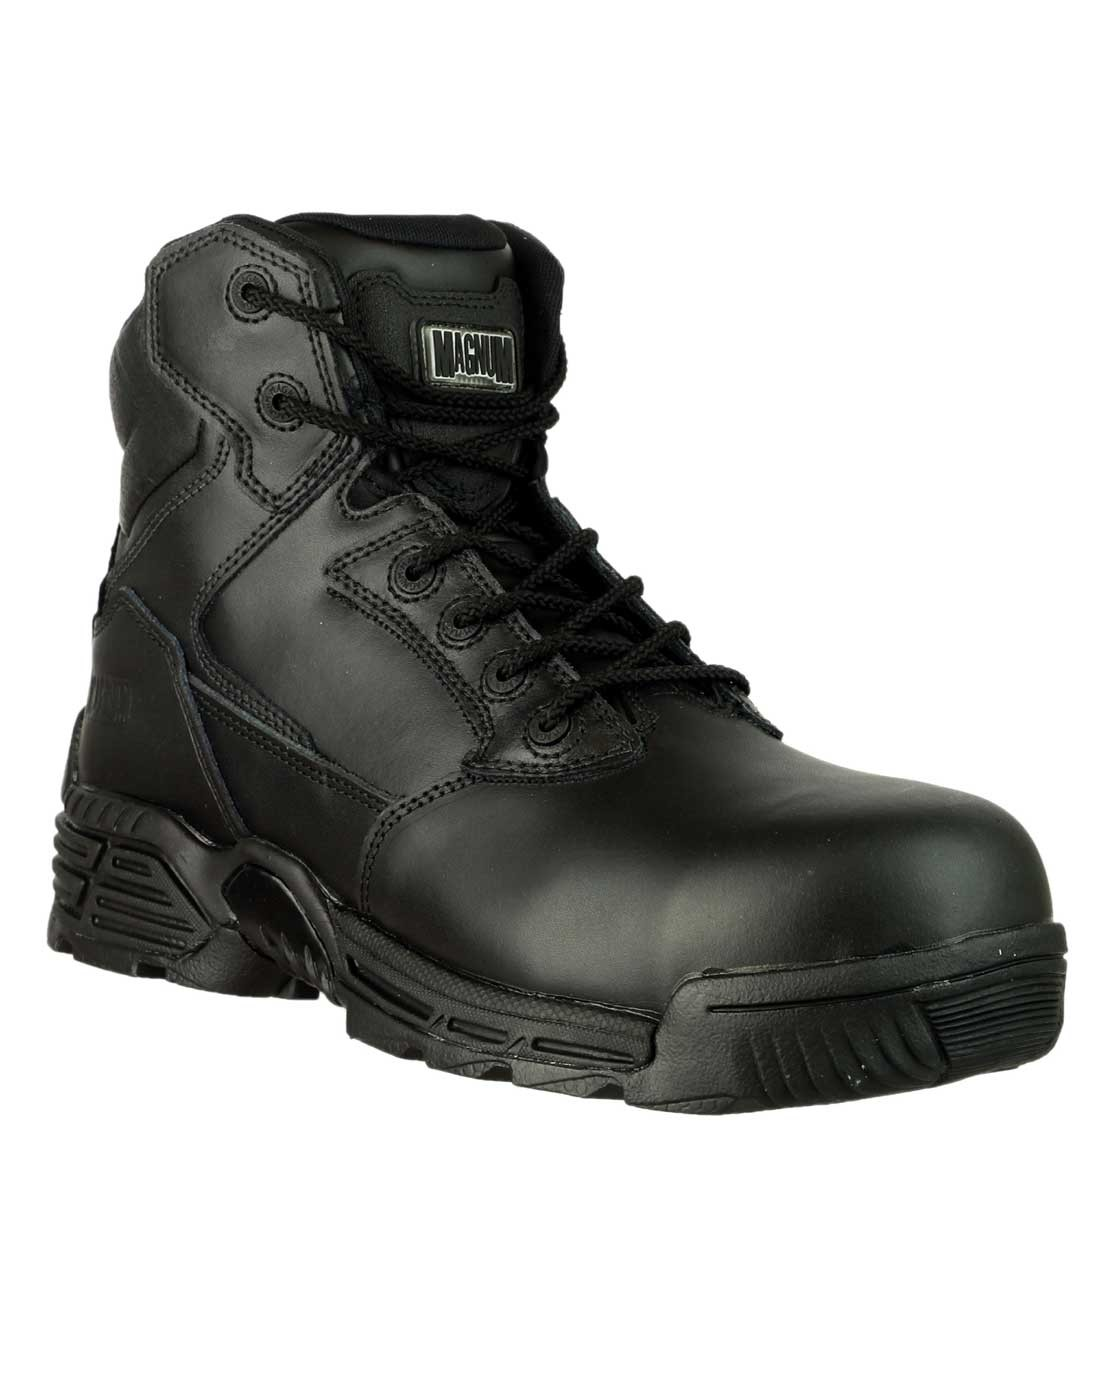 Magnum Stealth Force 6 37422 Safety Boots